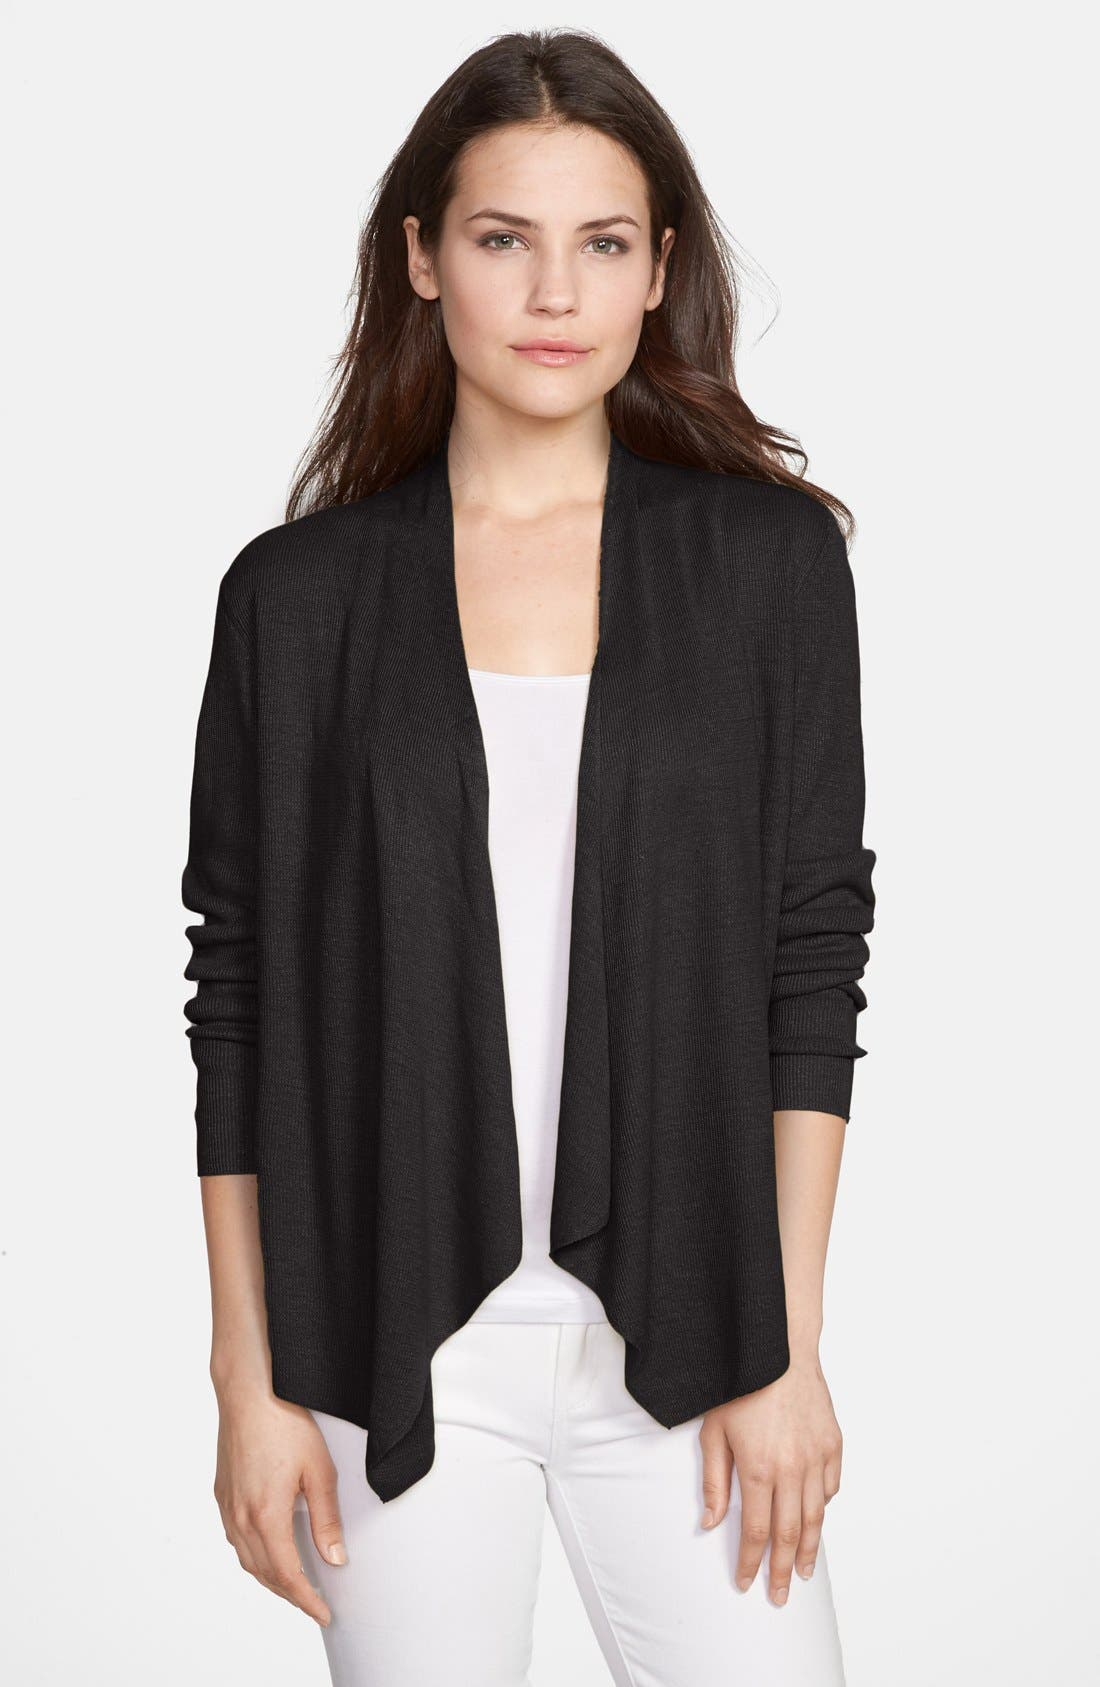 Alternate Image 1 Selected - Eileen Fisher Organic Linen Angle Front Cardigan (Regular & Petite)